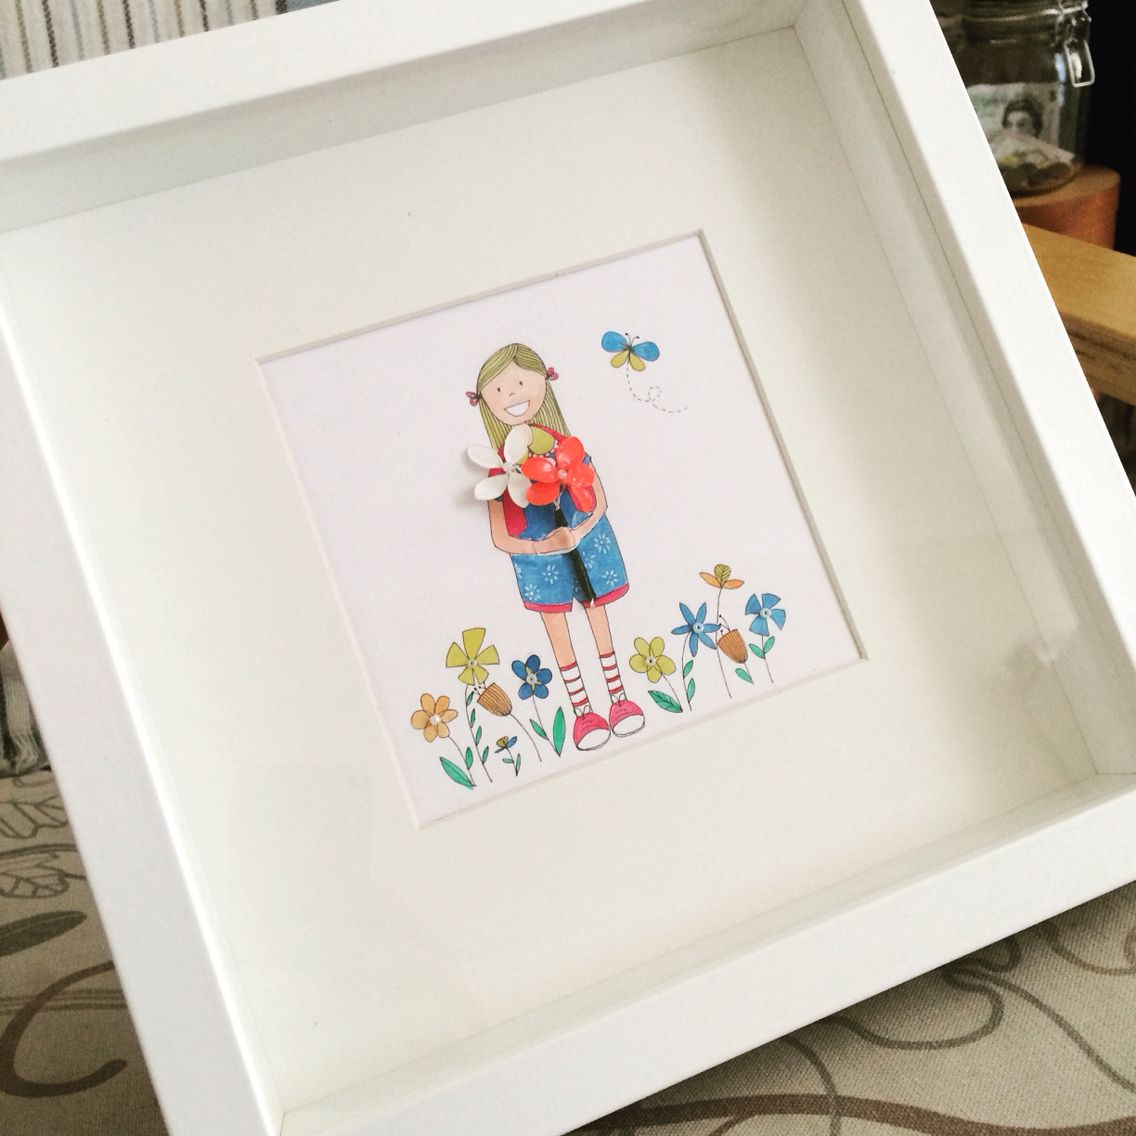 Illustrations of a little girl holding handmade flowers made by https://m.facebook.com/Daisy.BowDesign